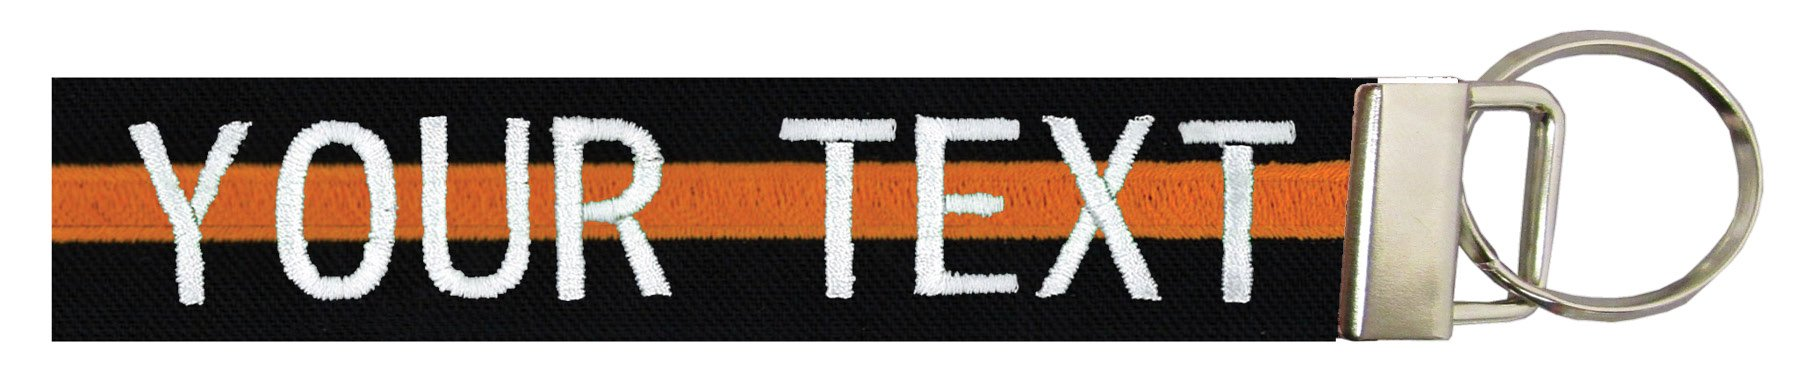 Northern Safari Custom Name Tape Material Luggage and Crate Tags Over 50 Fabrics! Made in The USA, Black Fabric/Orange Line, 6'' 2-LINE Text and Logo